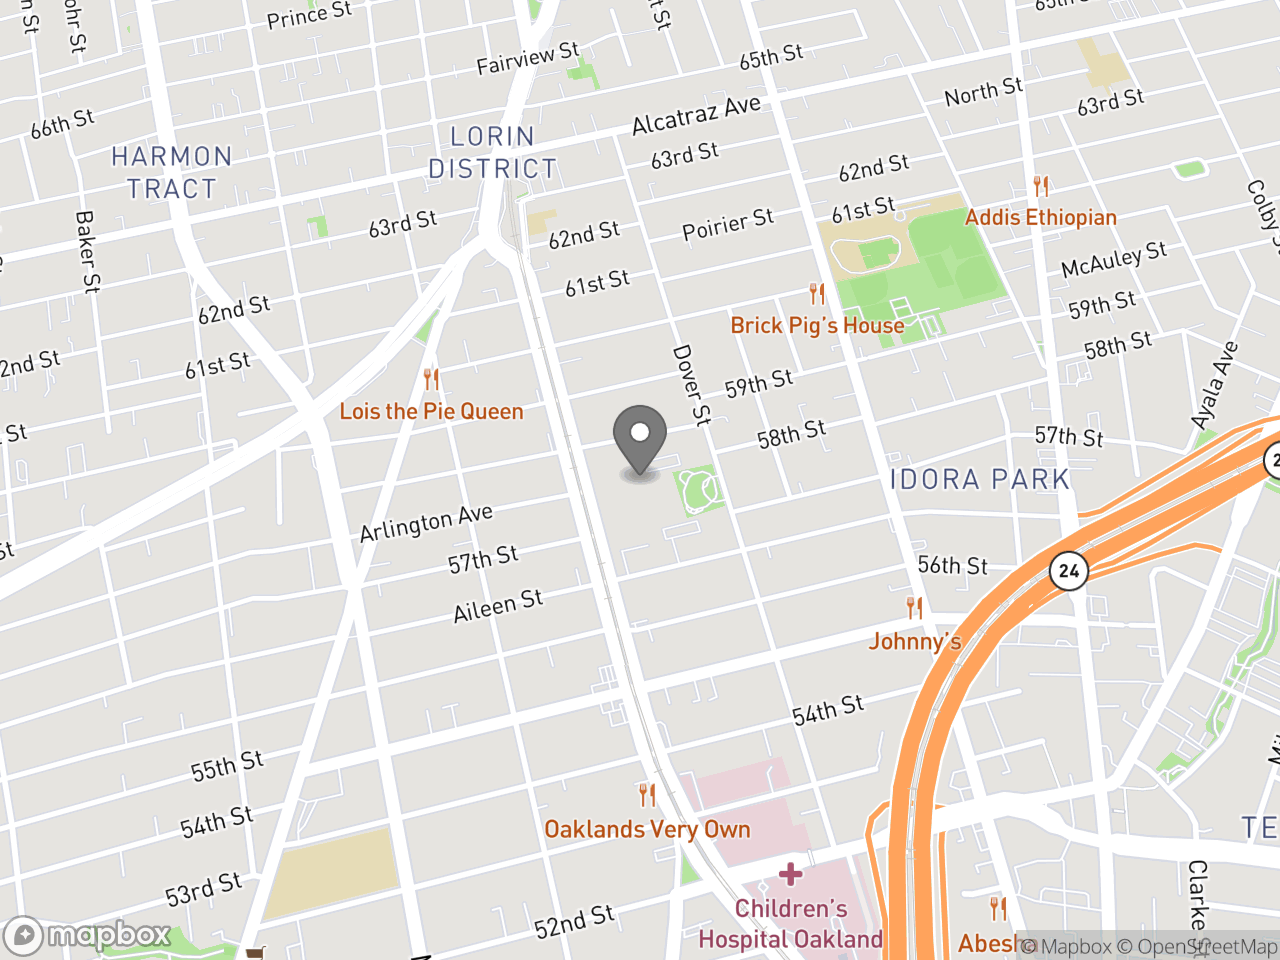 Map image for North Oakland Senior Center, located at 5714 Martin Luther King Jr Way in Oakland, CA 94609